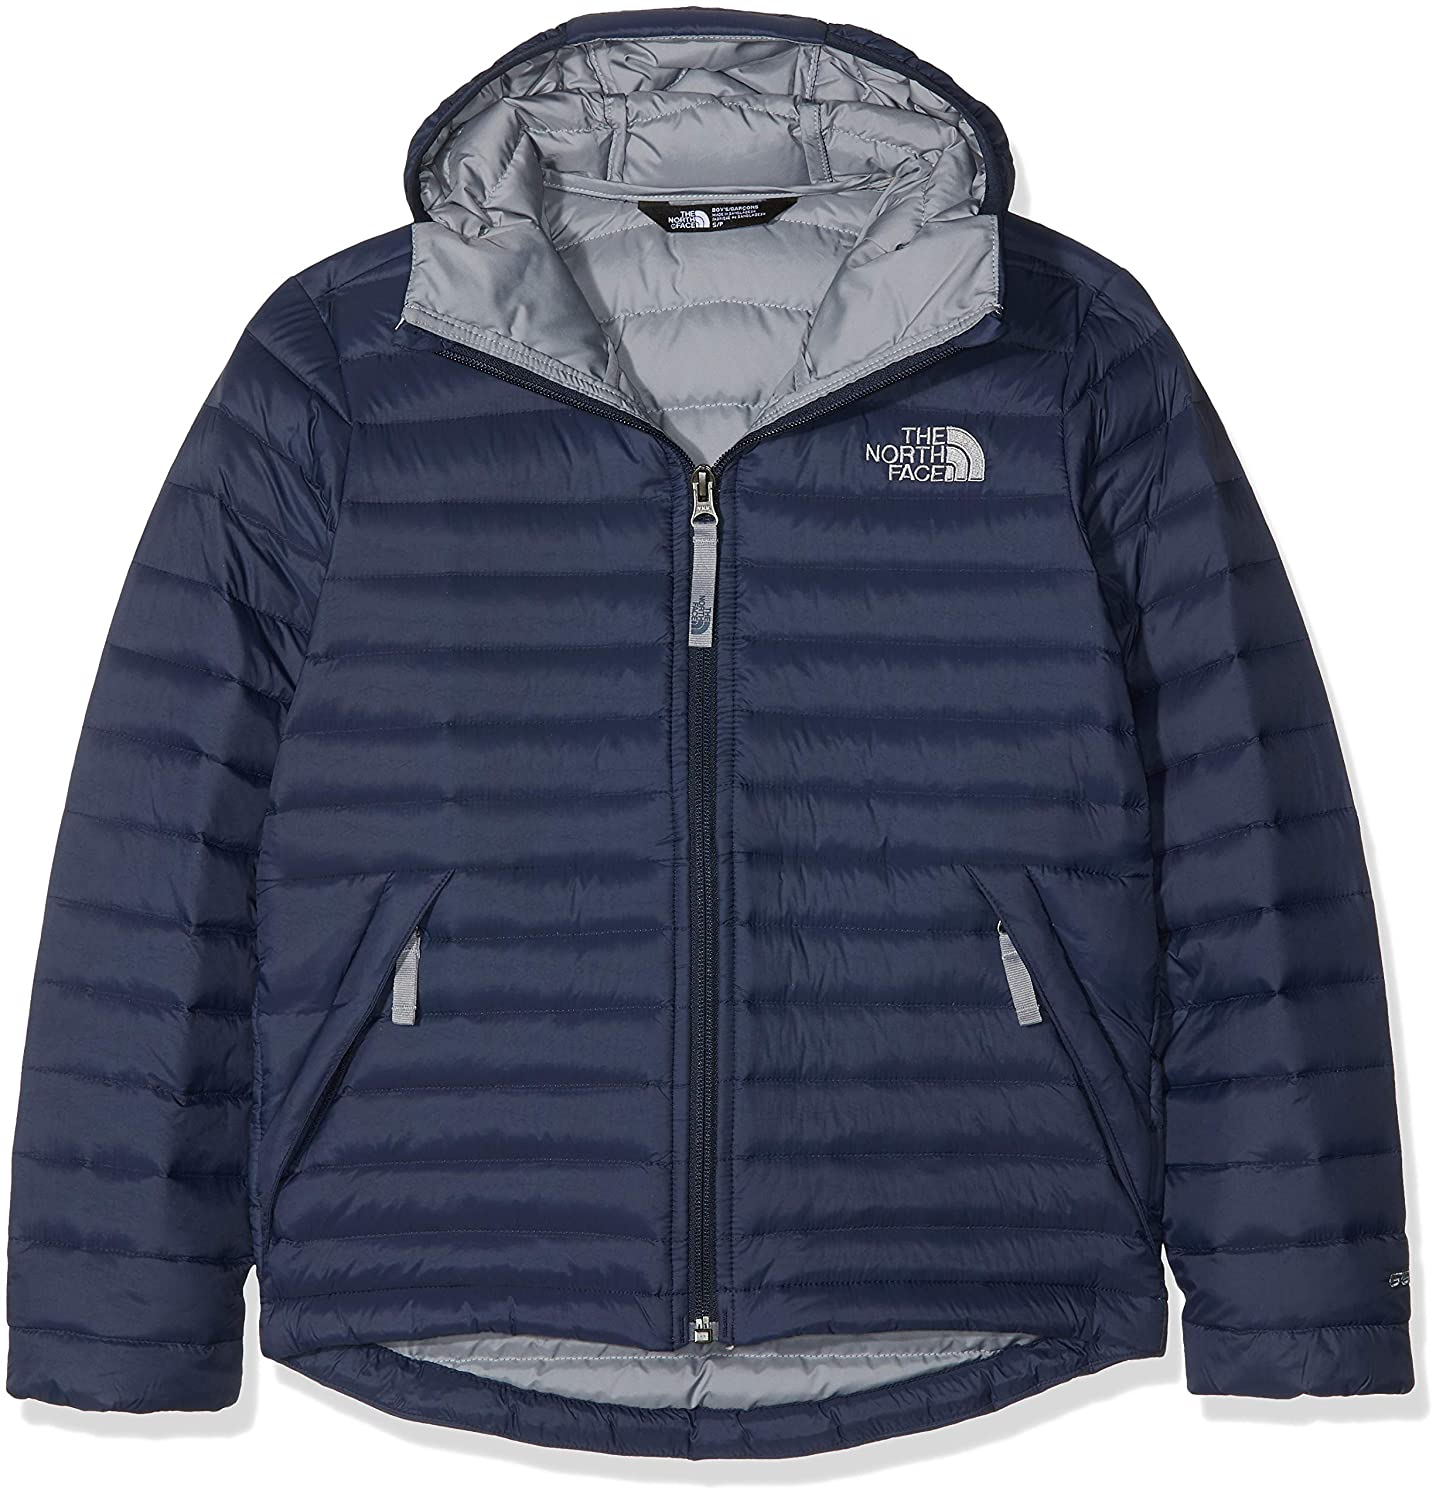 4344debe7 THE NORTH FACE Children's Boy's Aconcagua Down Hoodie